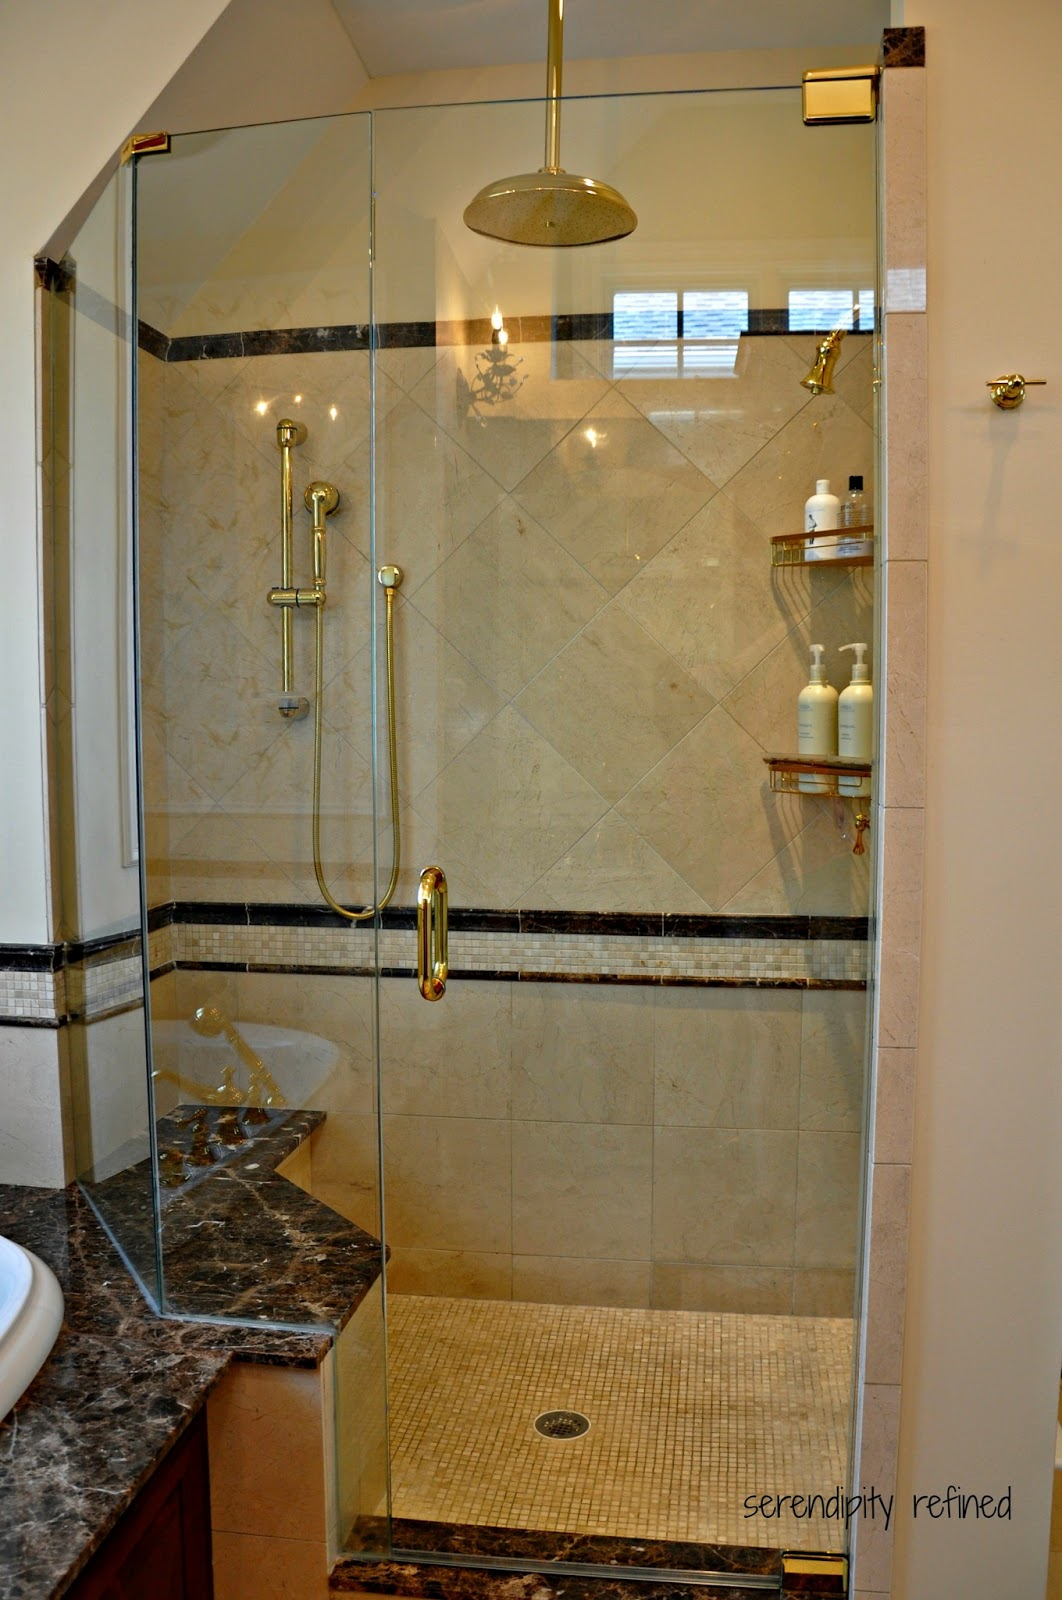 Serendipity refined blog master bathroom reveal Master bathroom tile floor